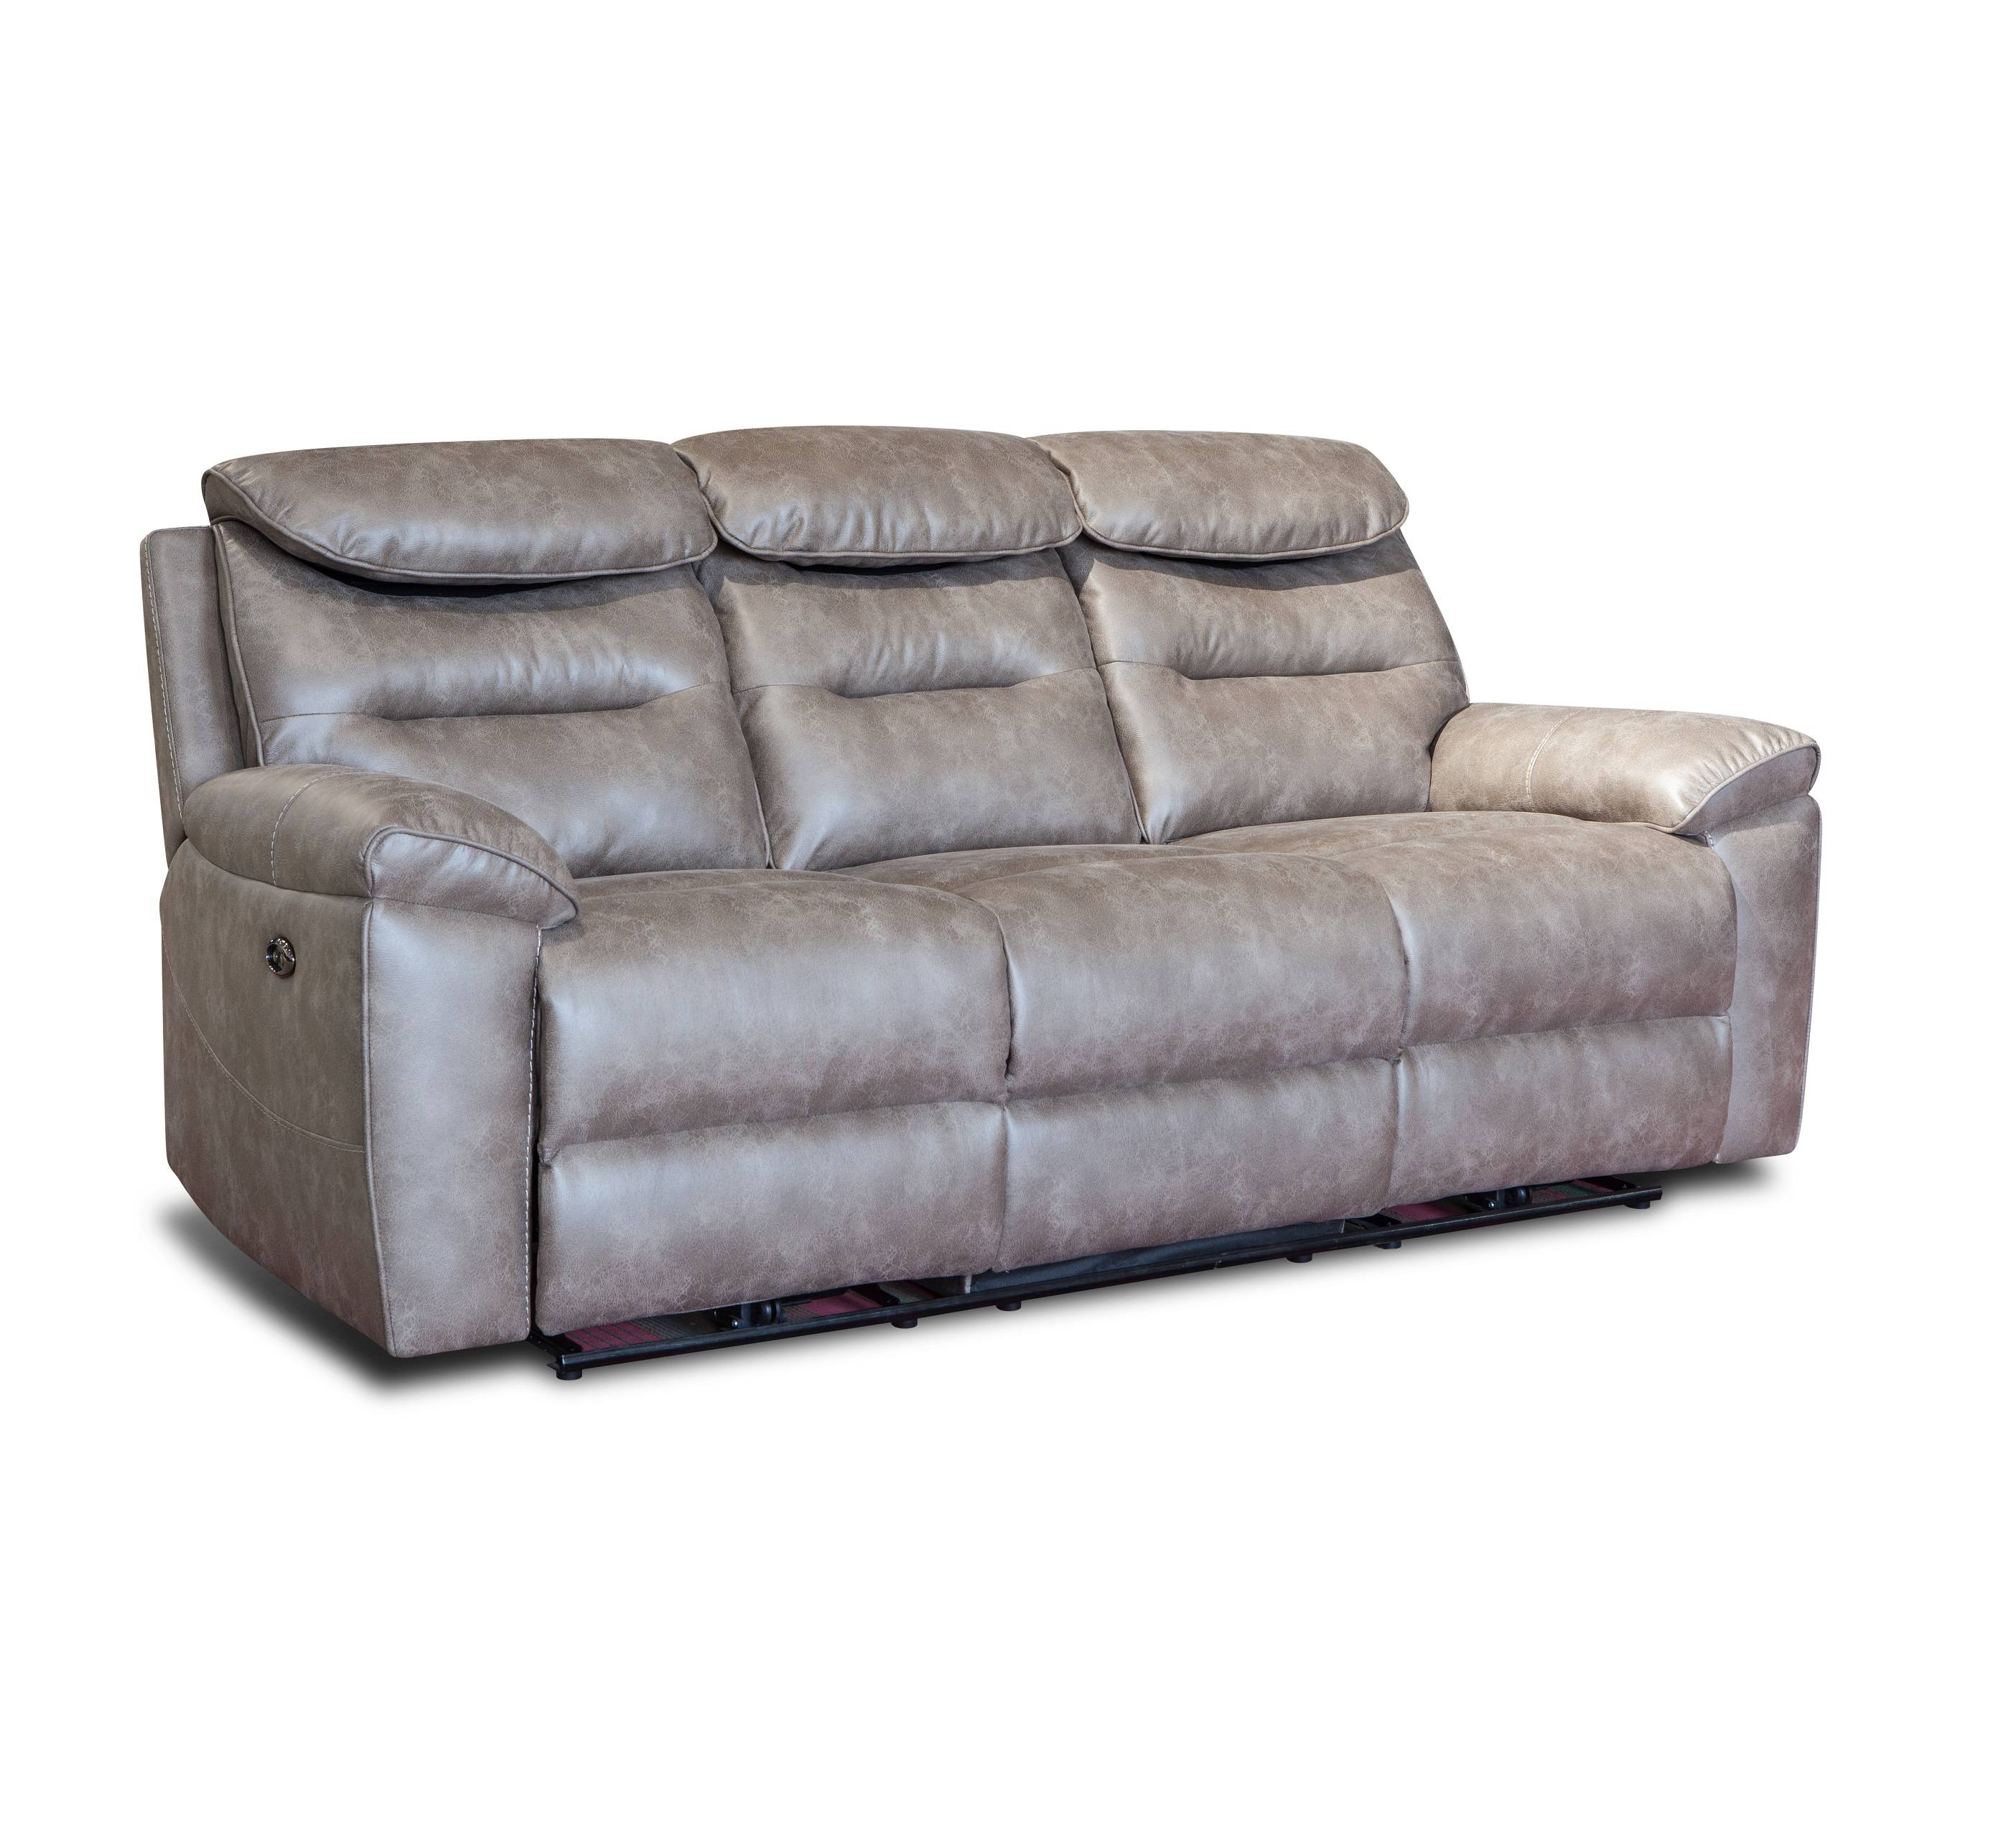 Italy lazy boy relaxing leather recliner electric sofa